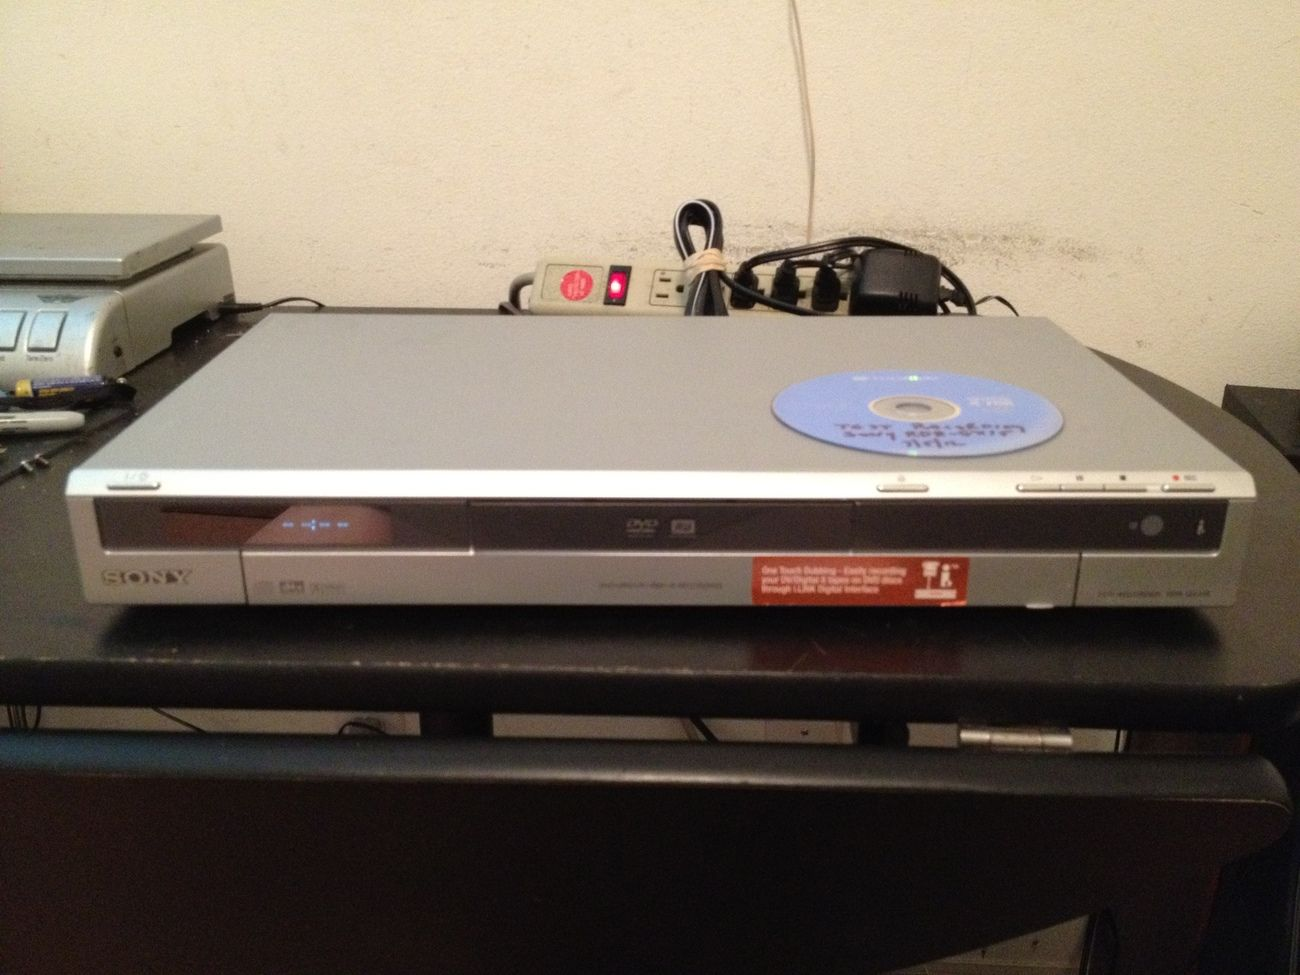 Sony RDR-GX315 DVD Recorder / Player. This slim, silver finish Sony  Recorder is in very good to excellent condition. It has been tested and is  working.